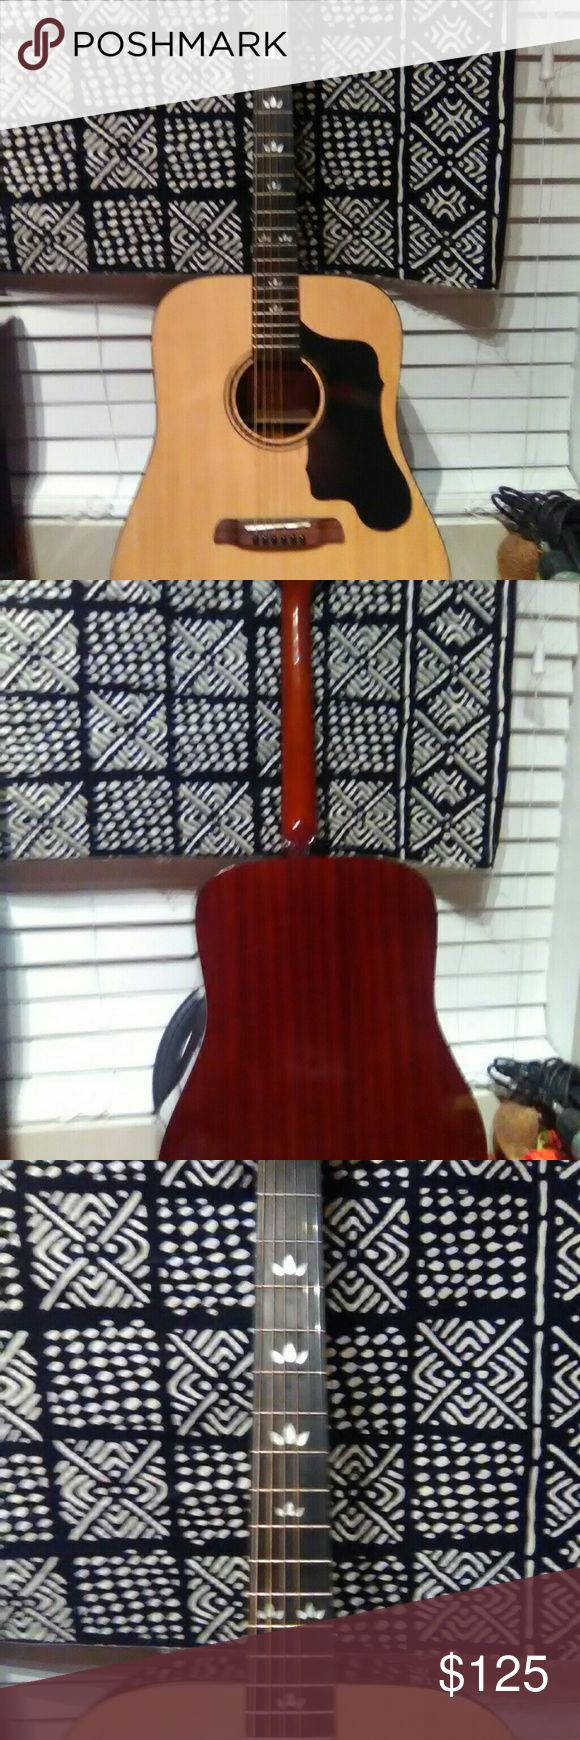 Sawtooth acoustic guitar New with soft case sawtooth Other